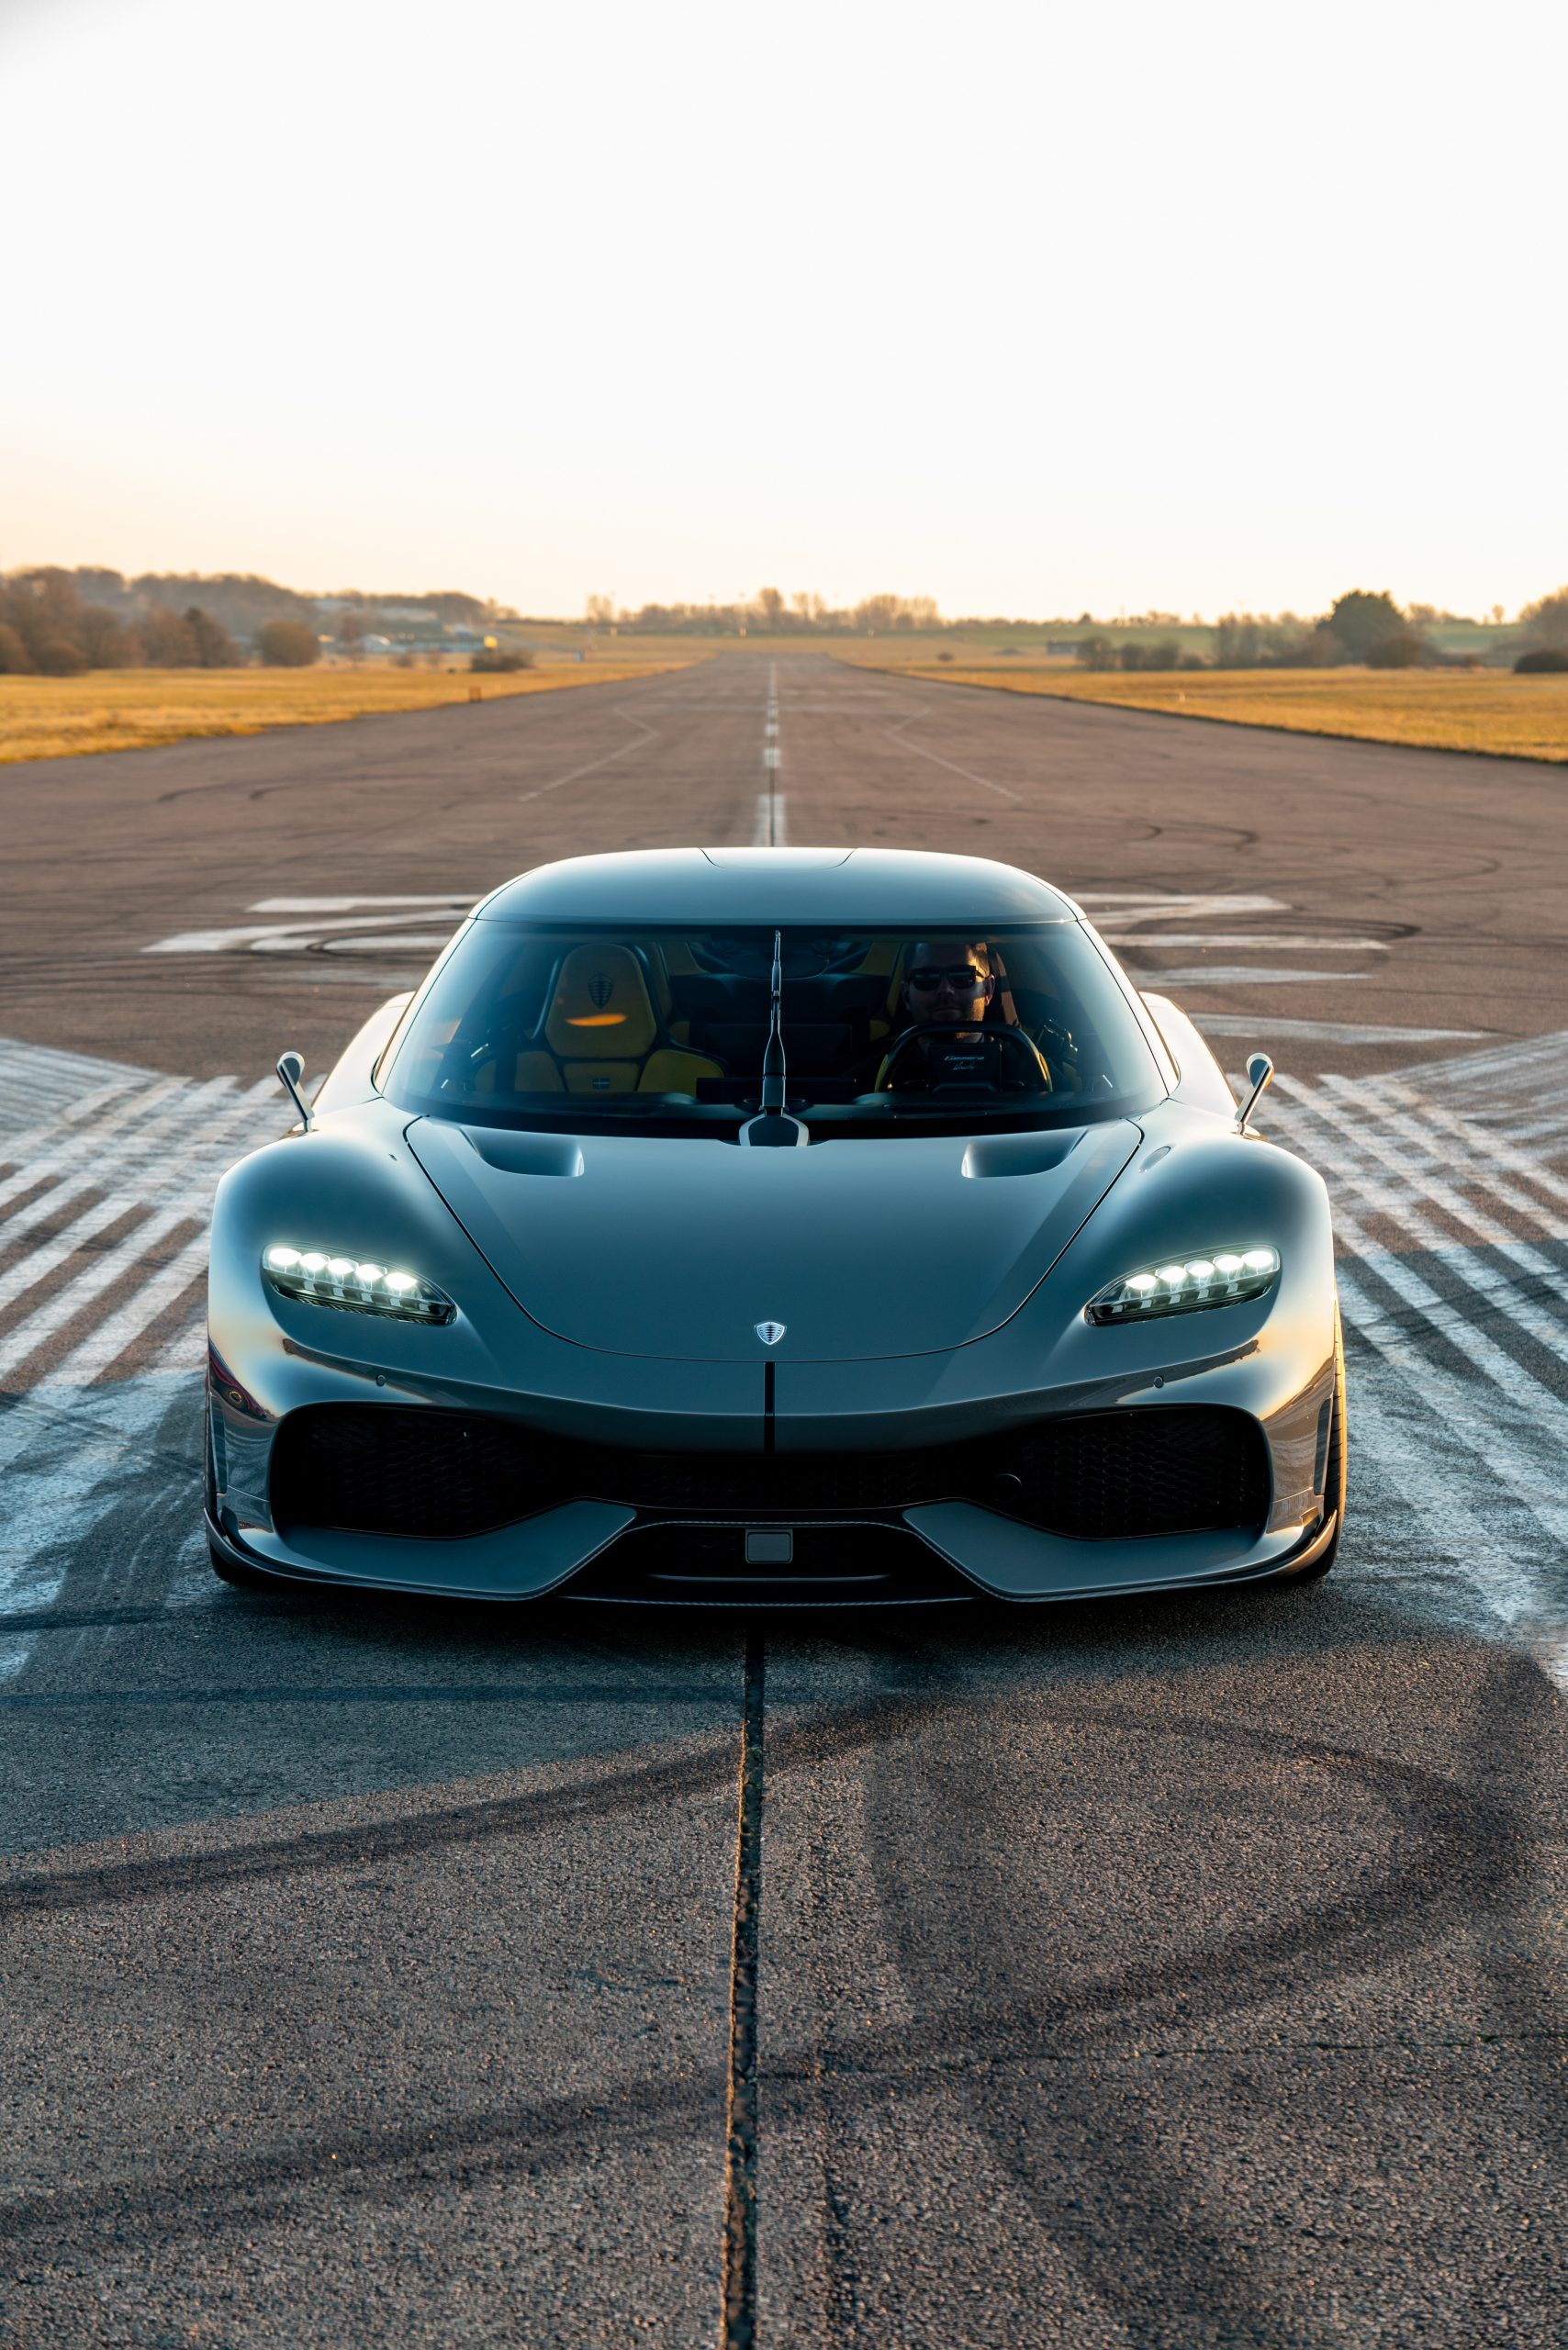 Koenigsegg Gemera front doors closed